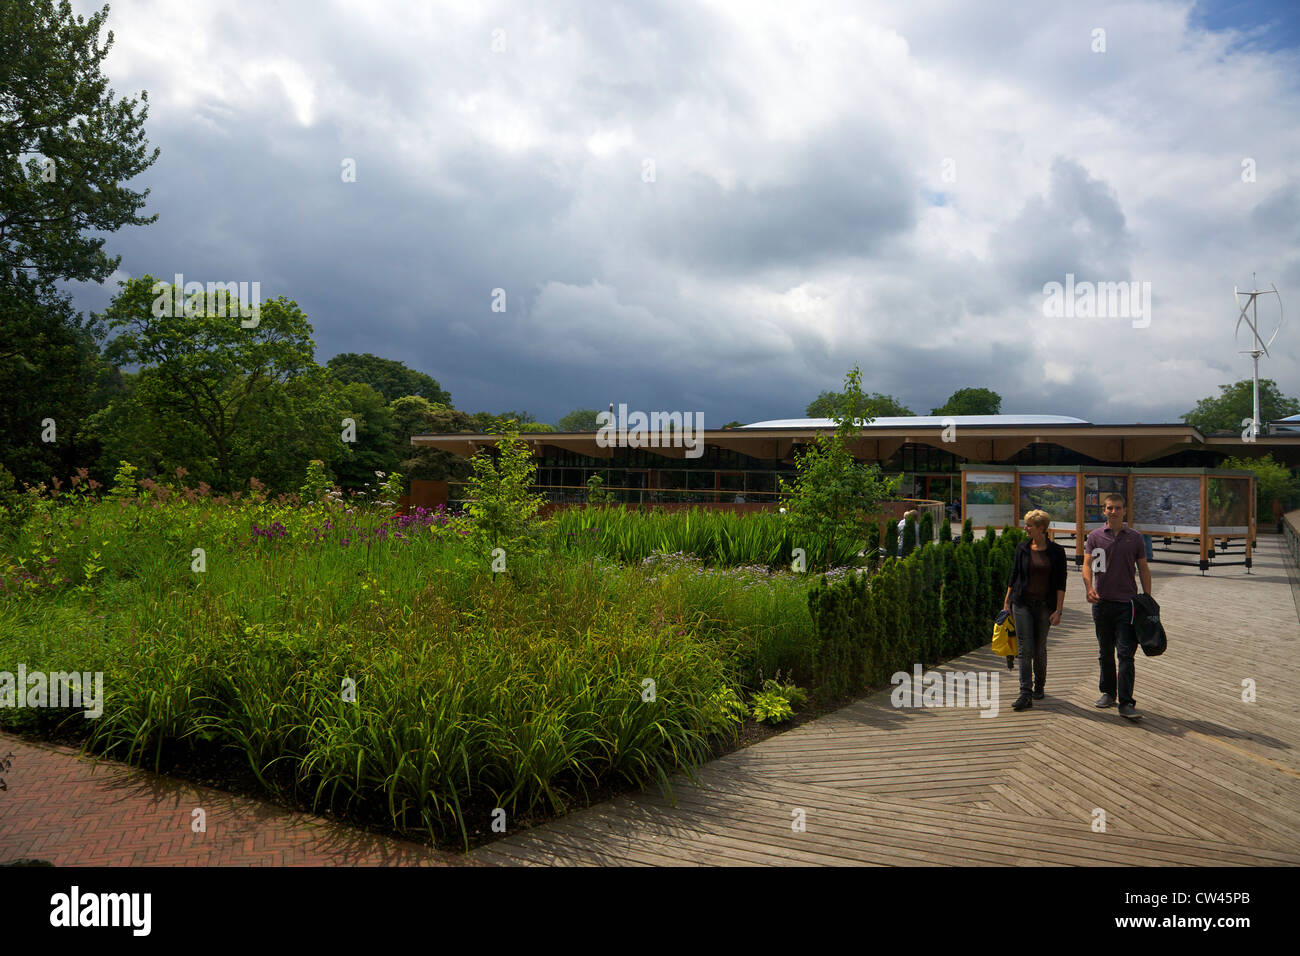 Royal Botanic Garden, Edinburgh, Scotland, UK, GB, British Isles, Europe - Stock Image